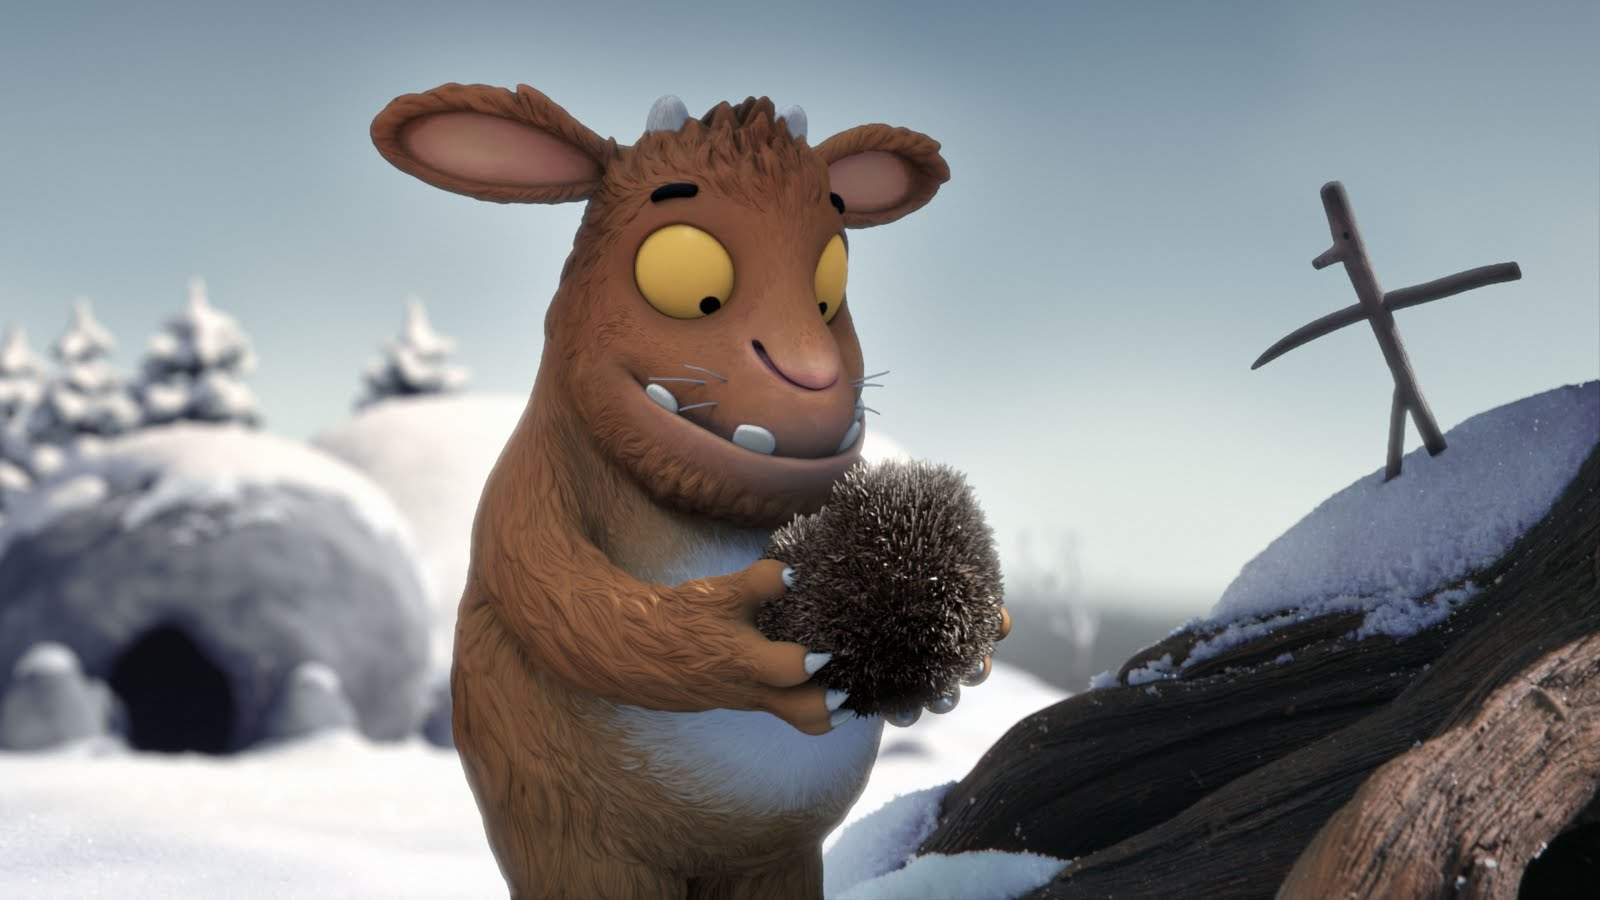 The Gruffalo´s Child finds a hedgehog